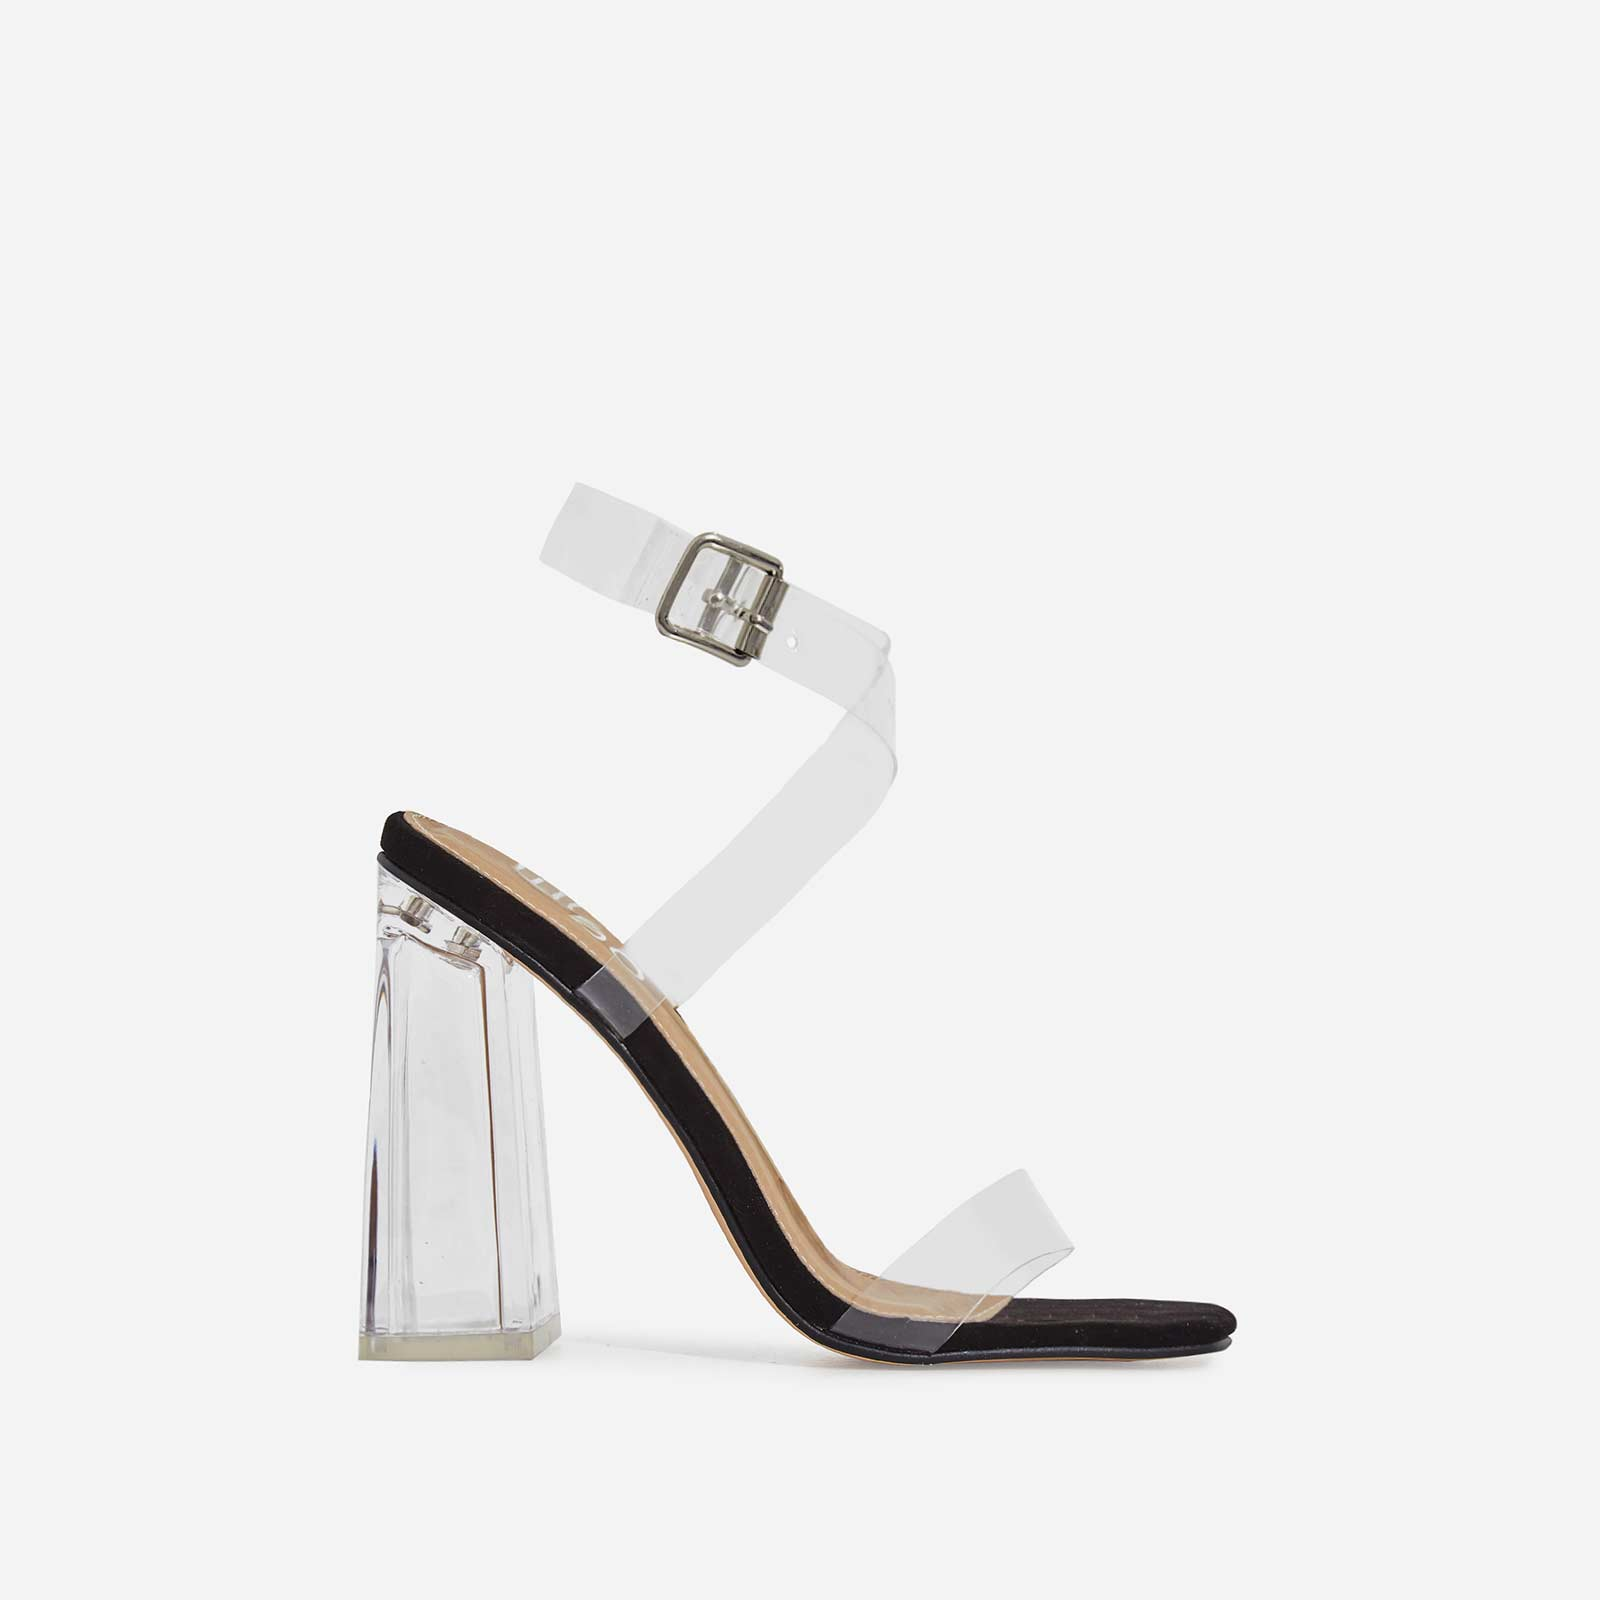 Saint Square Toe Perspex Flared Block Heel In Black Faux Suede